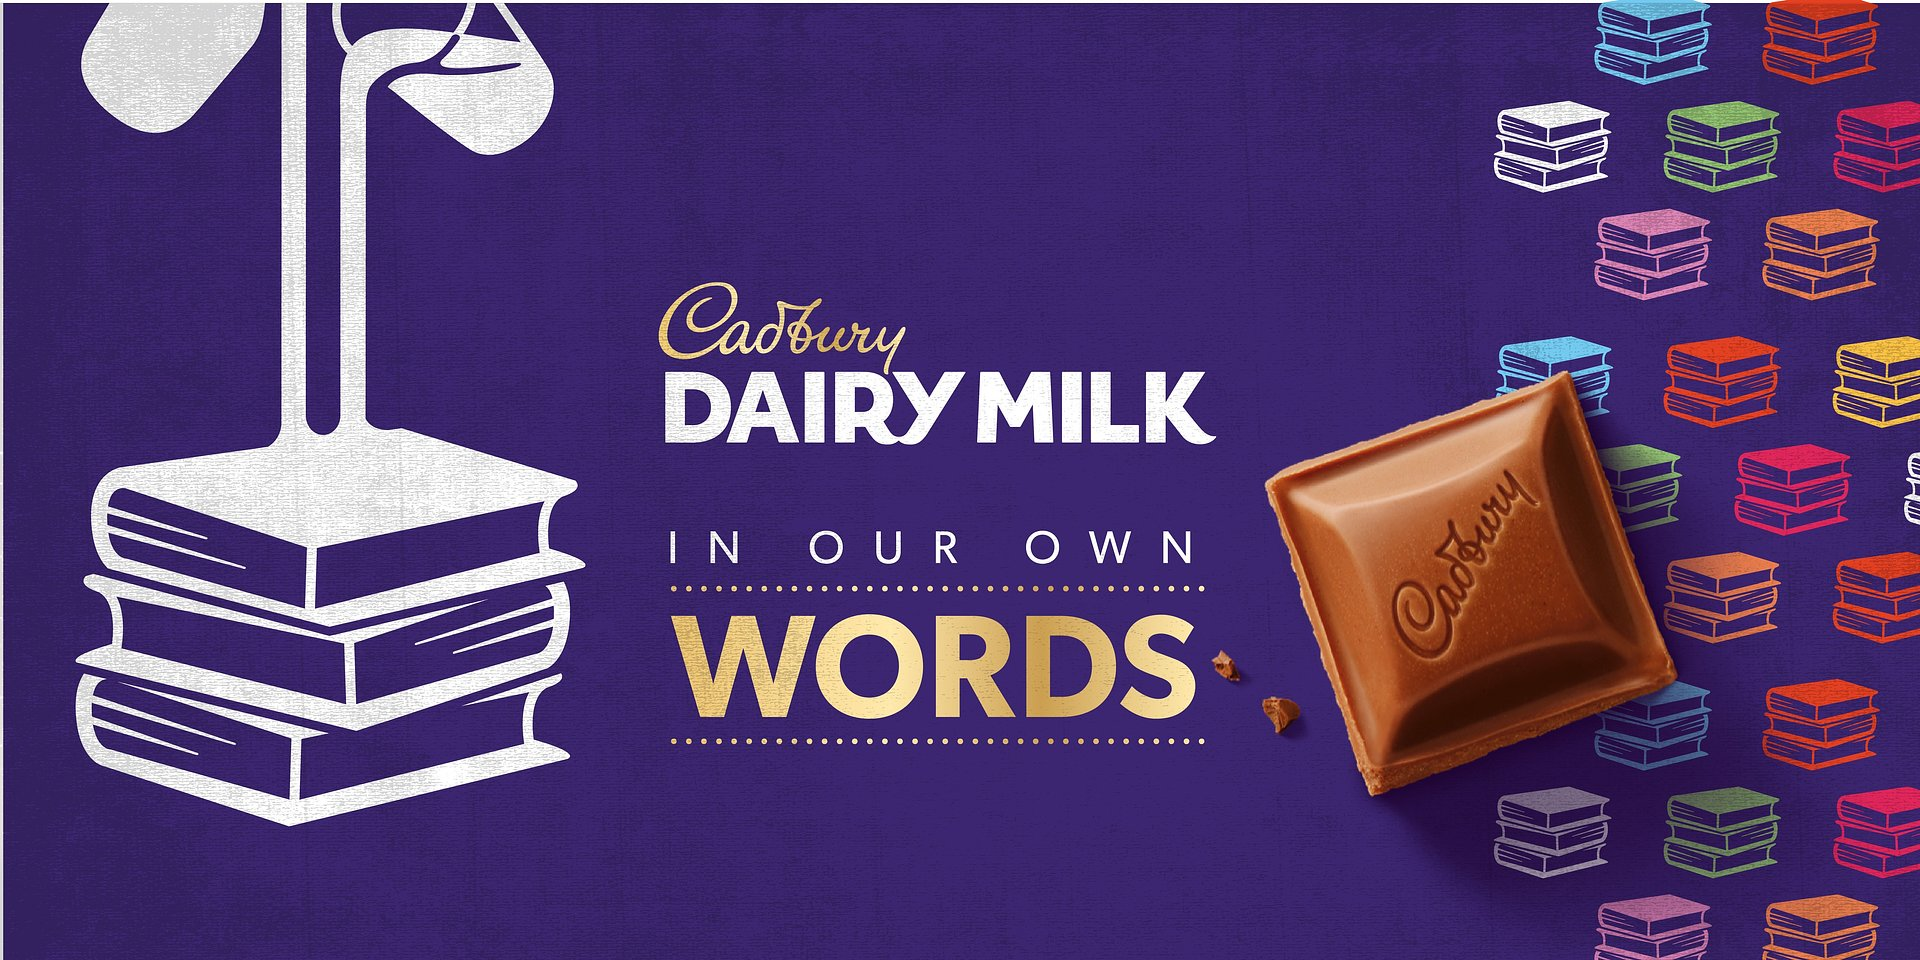 Translate Just One Word And Ignite A Child's Love For Reading With Cadbury Dairy Milk